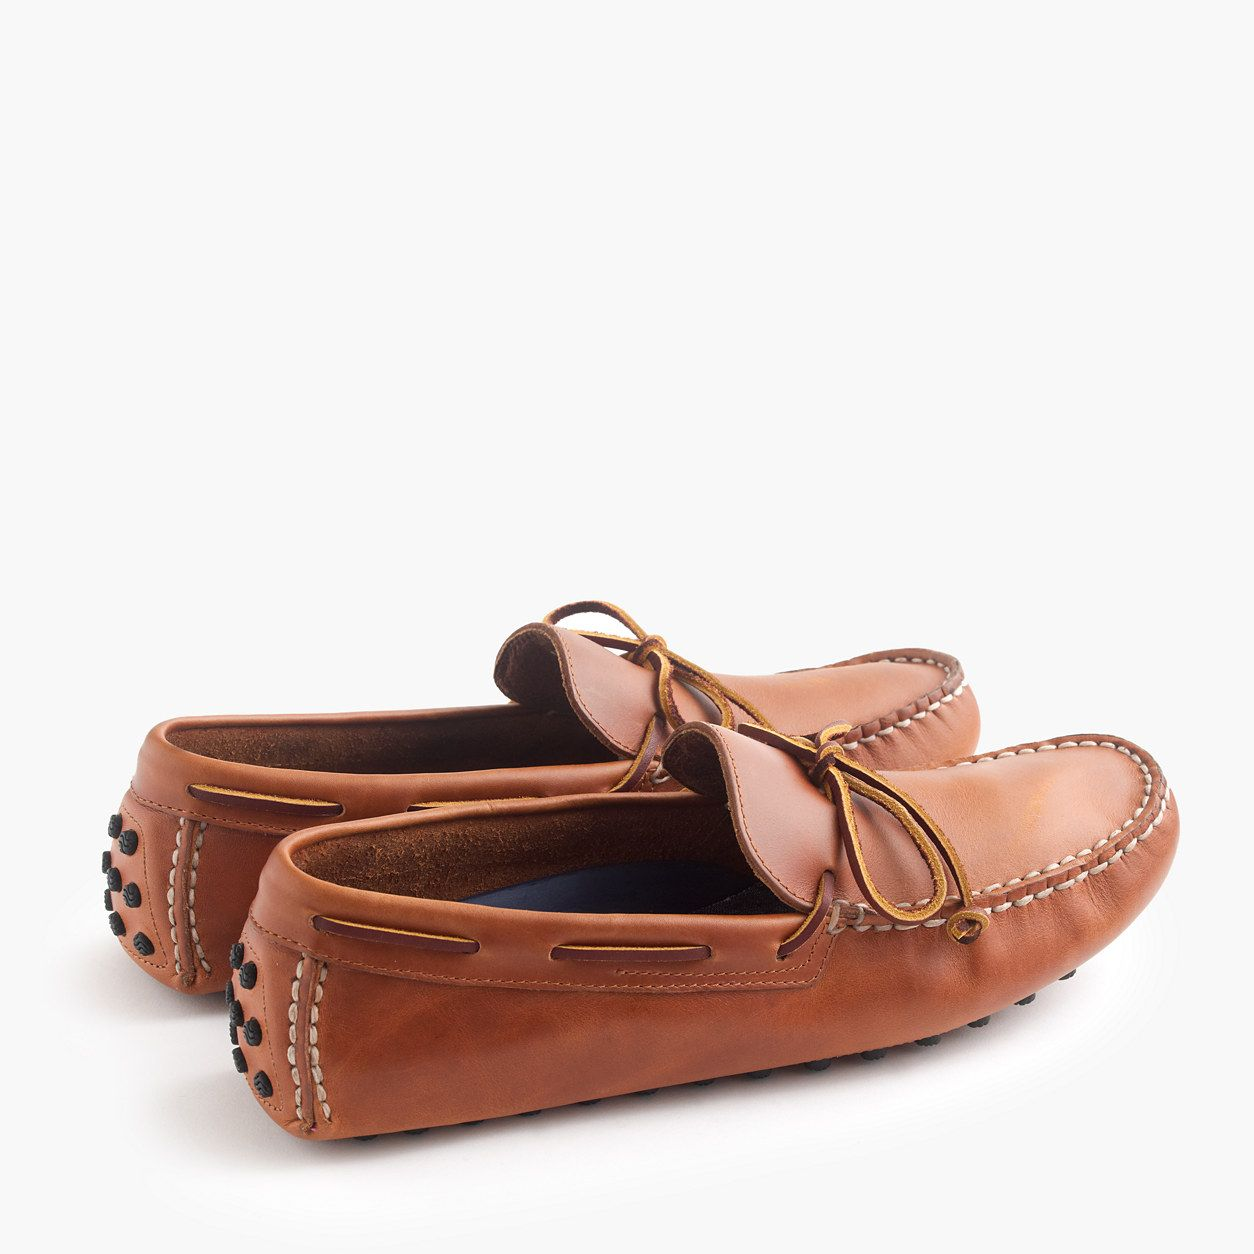 3b917957098 Sperry® for J.Crew - Driving Moccasins -  120